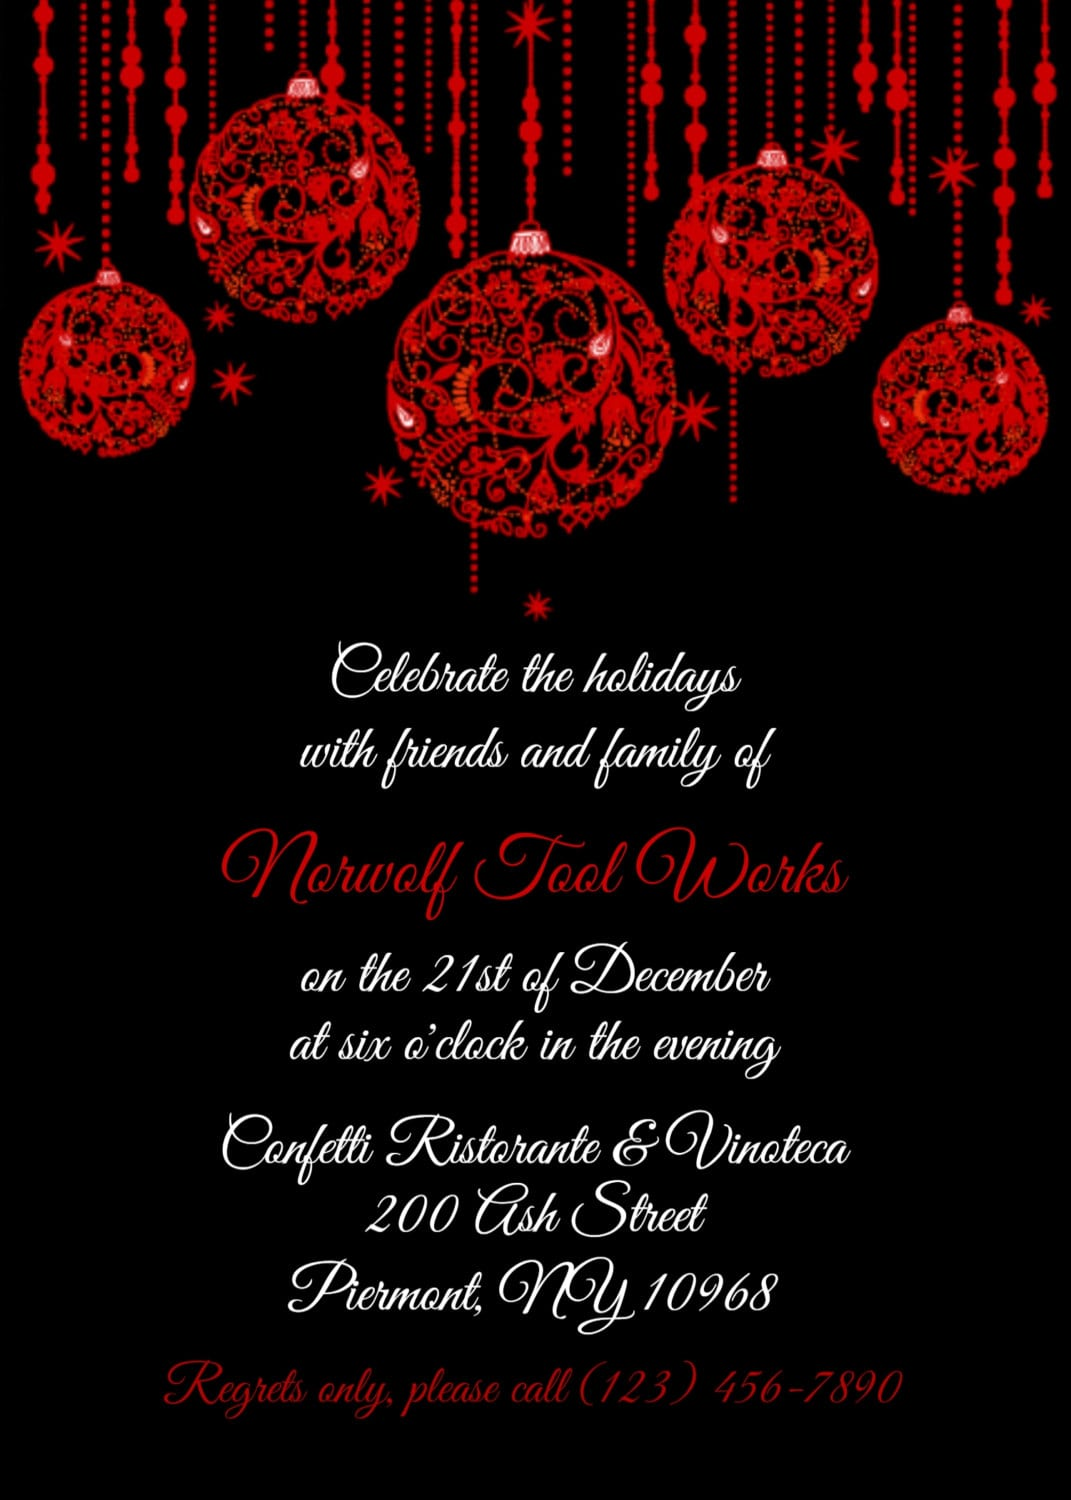 Corporate Christmas Party Invitation Templates – Fun For Christmas